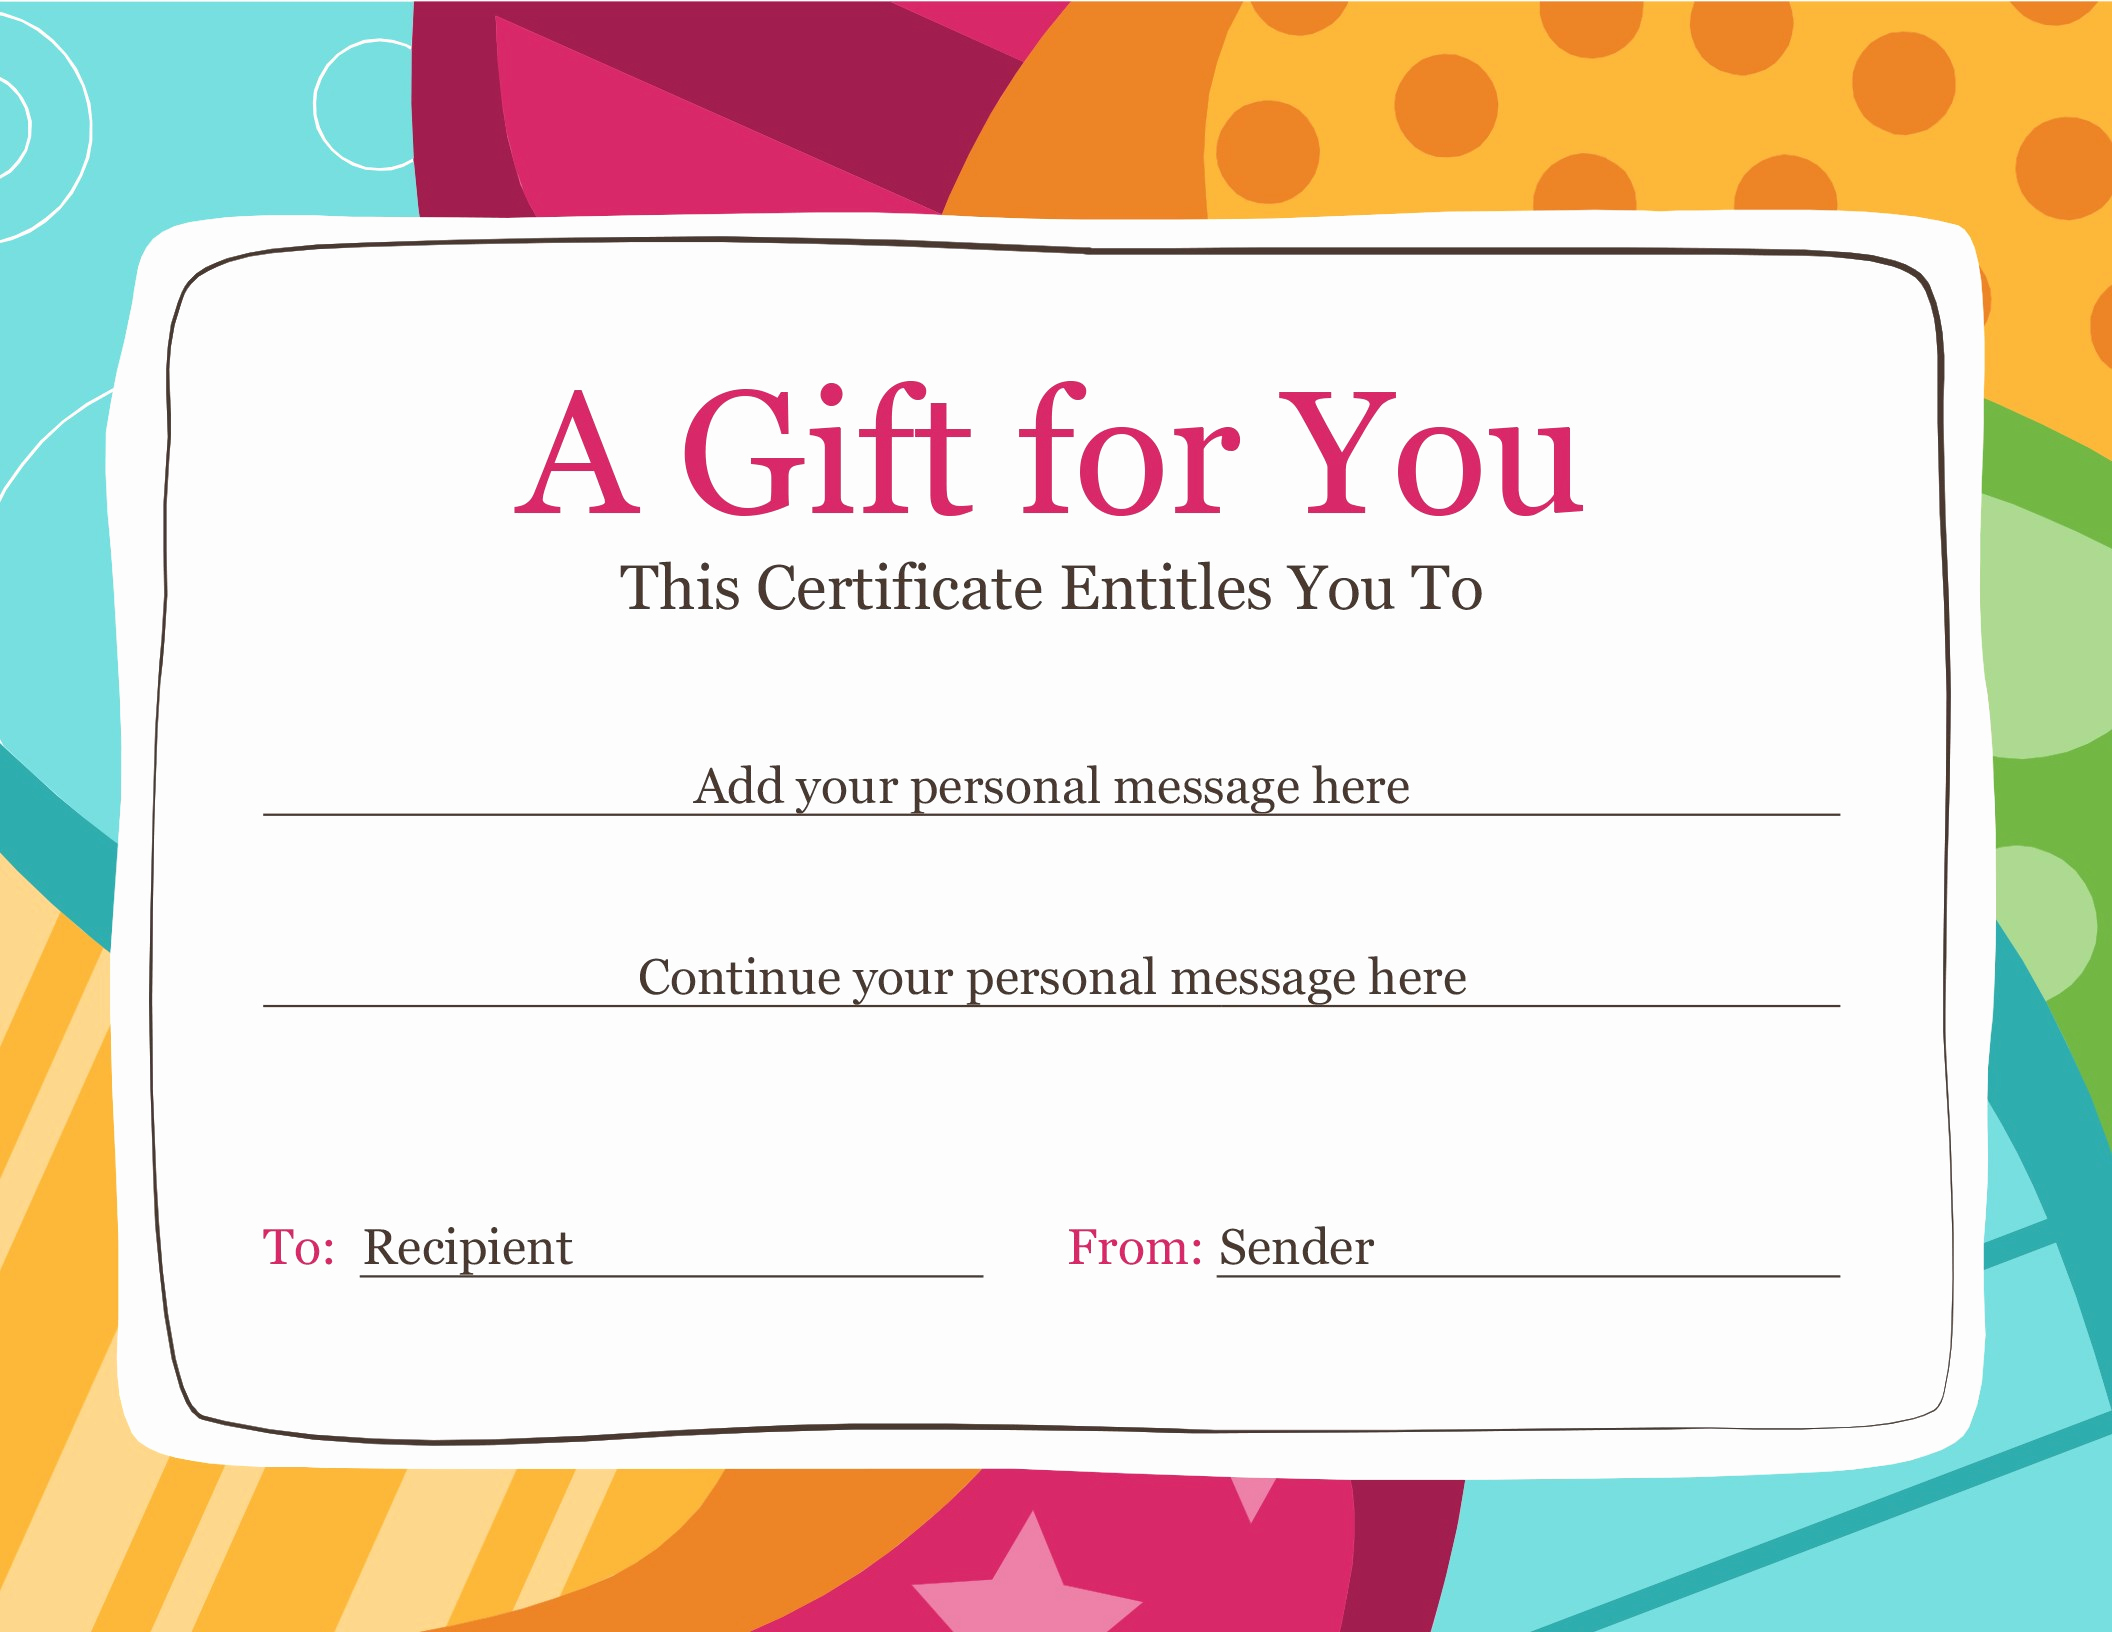 Template for Gift Certificate Fresh Certificates Fice